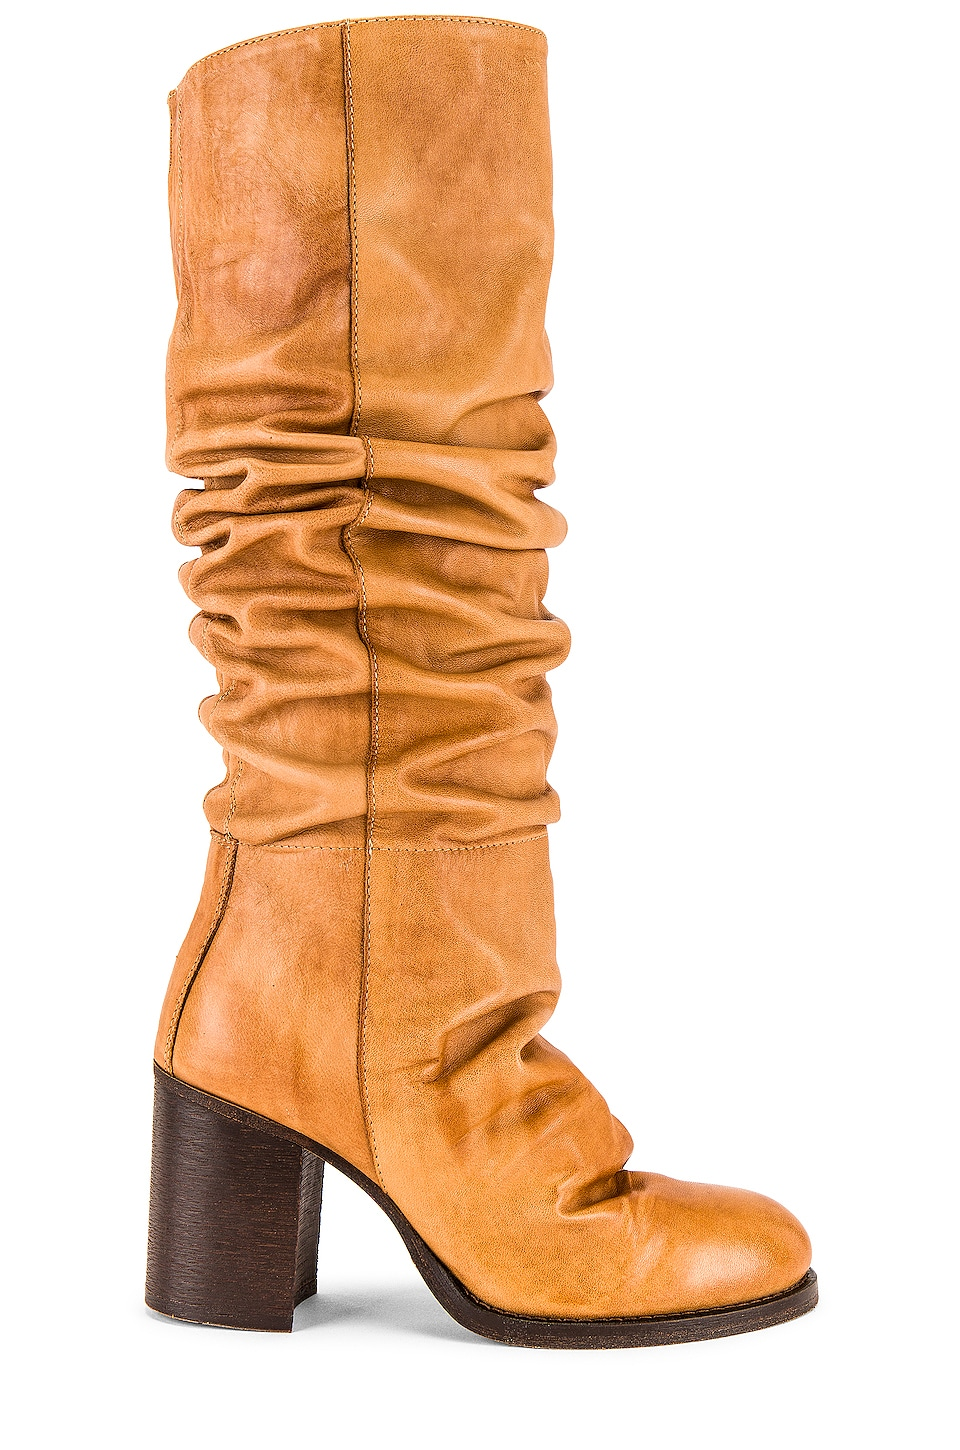 Free People Tall Slouch Boot in Tan